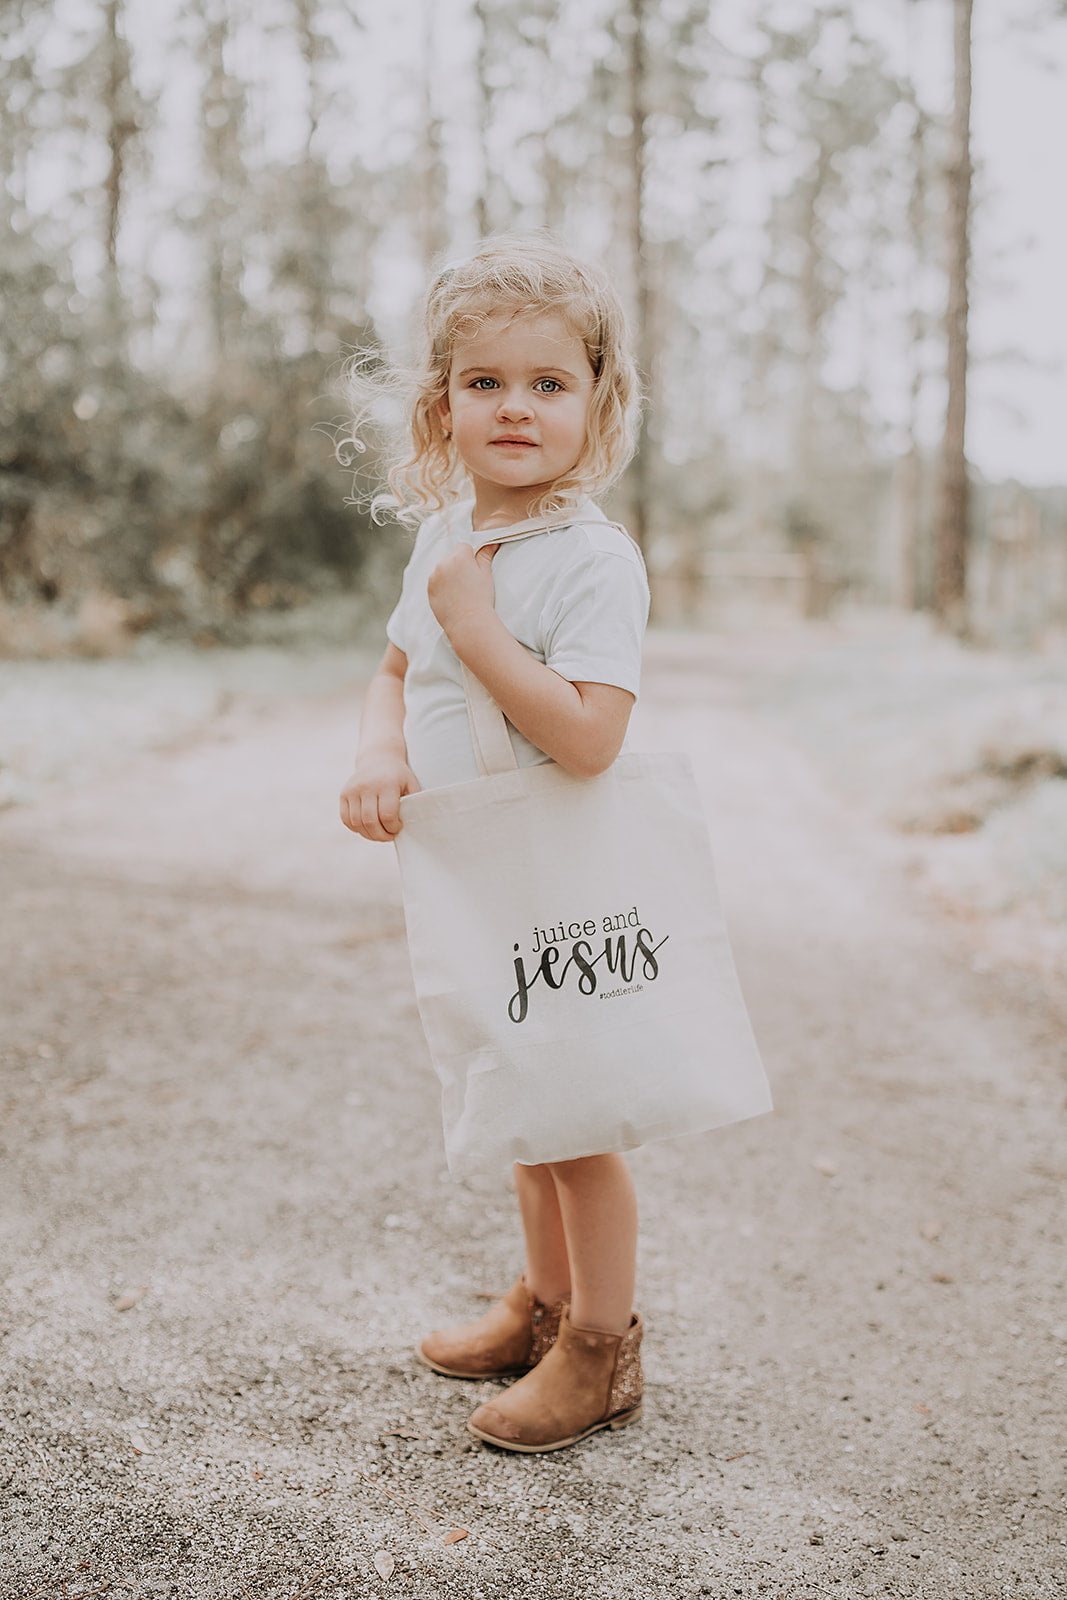 Juice + Jesus Toddler Tote